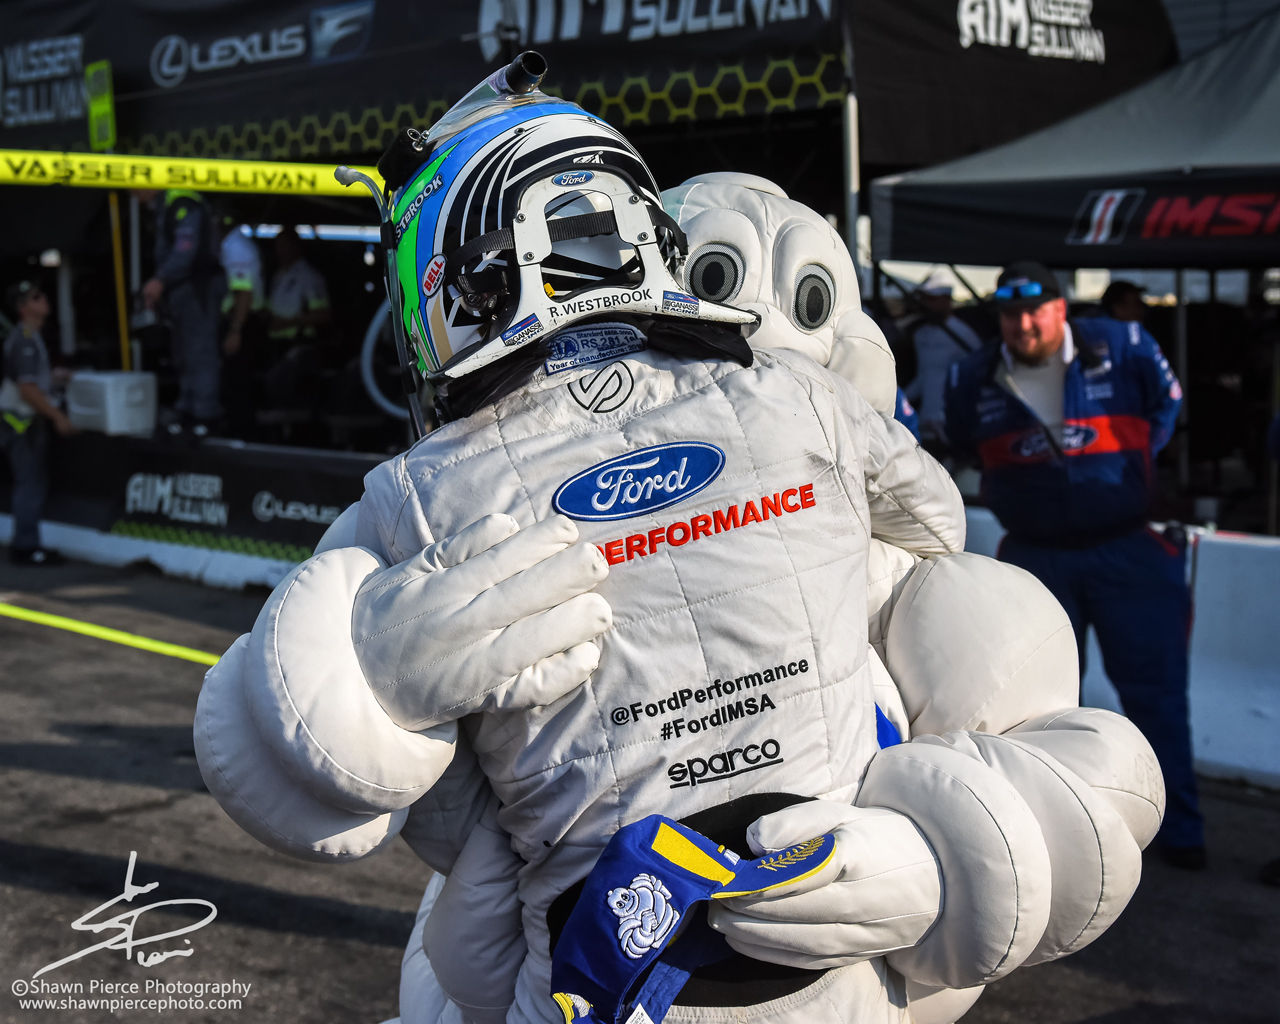 Richard Westbrook In the loving arms of the Michelin Man.